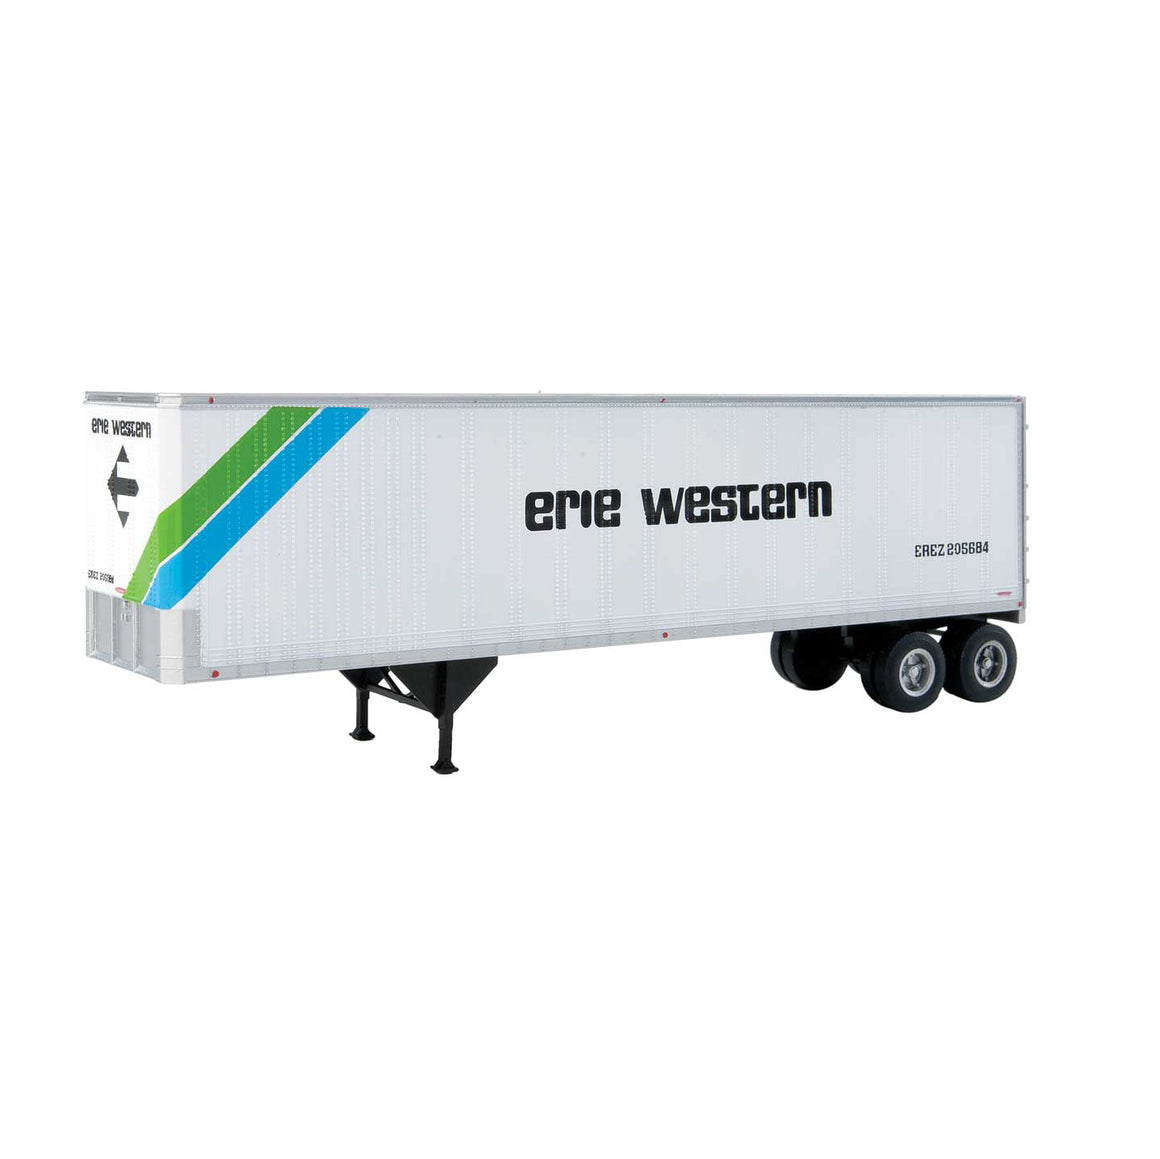 HO Scale: 40' Trailmobile Trailer - Erie Western - 2-Pack